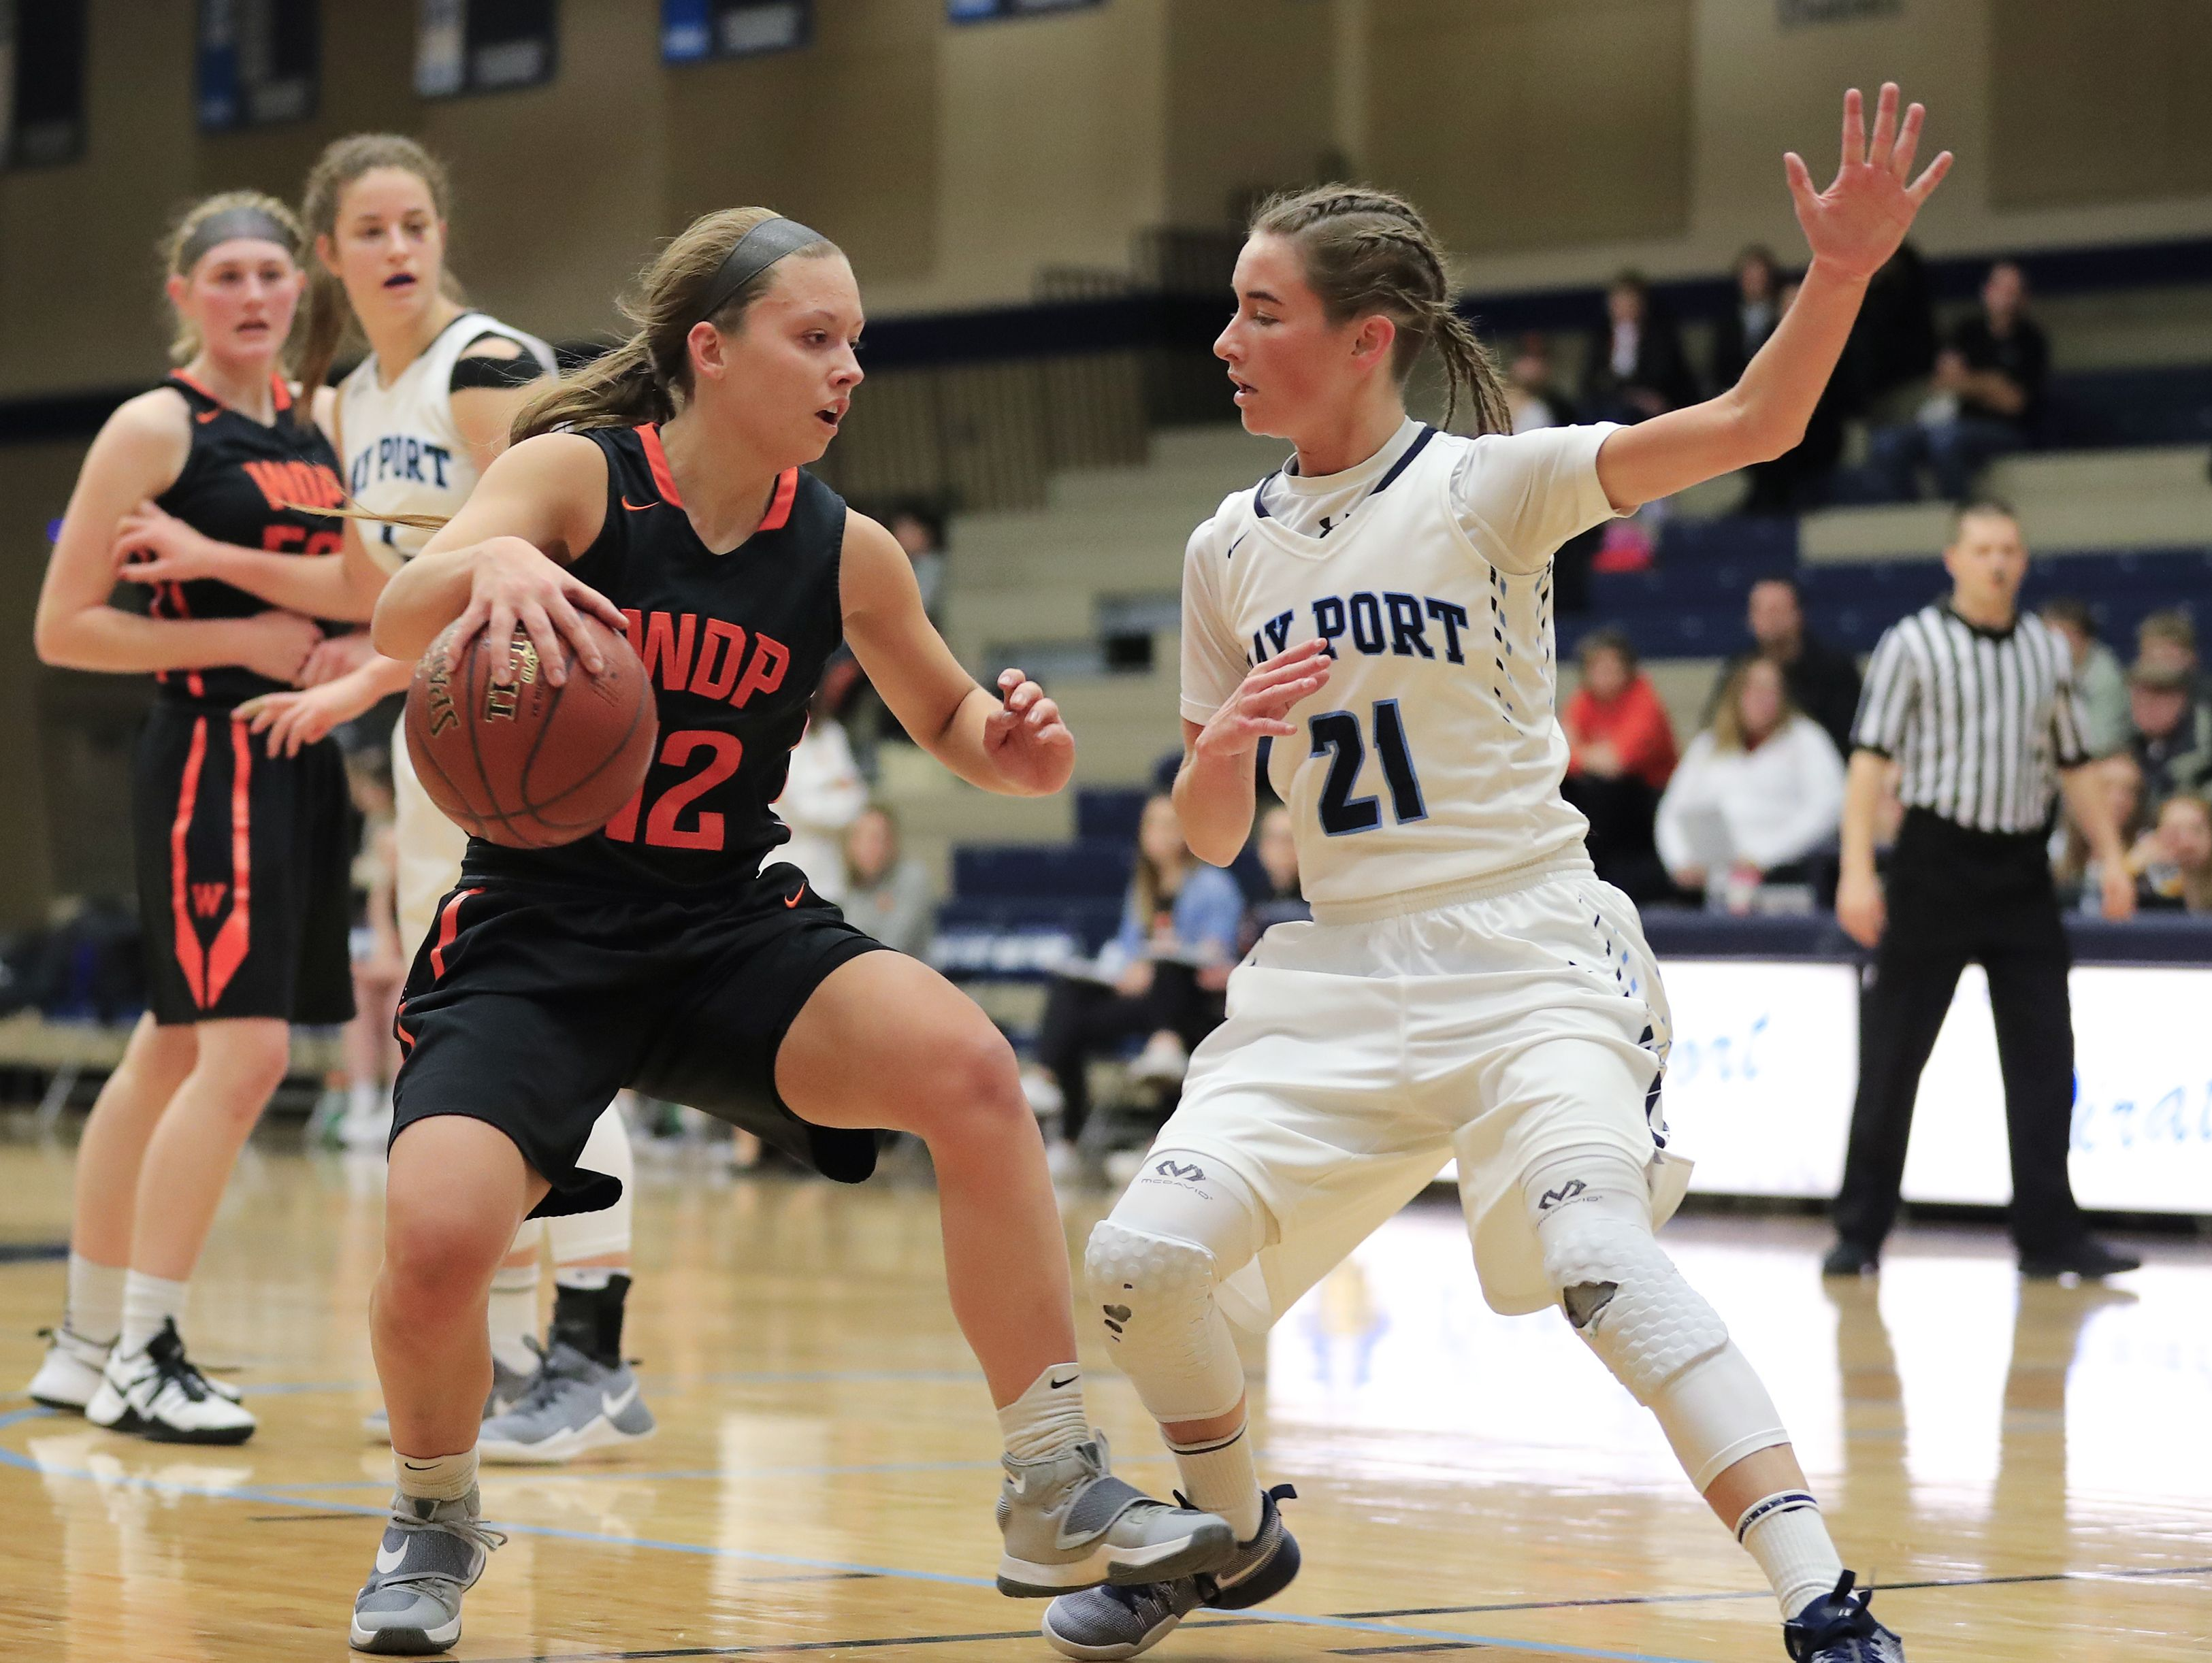 Bay Port's Meg Knutson (21) defends against West De Pere's Liz Edinger (12) on Dec. 30 at Bay Port during a nonconference game. Edinger has helped the Phantoms climb the state ranking and maintain a 3.83 team GPA.